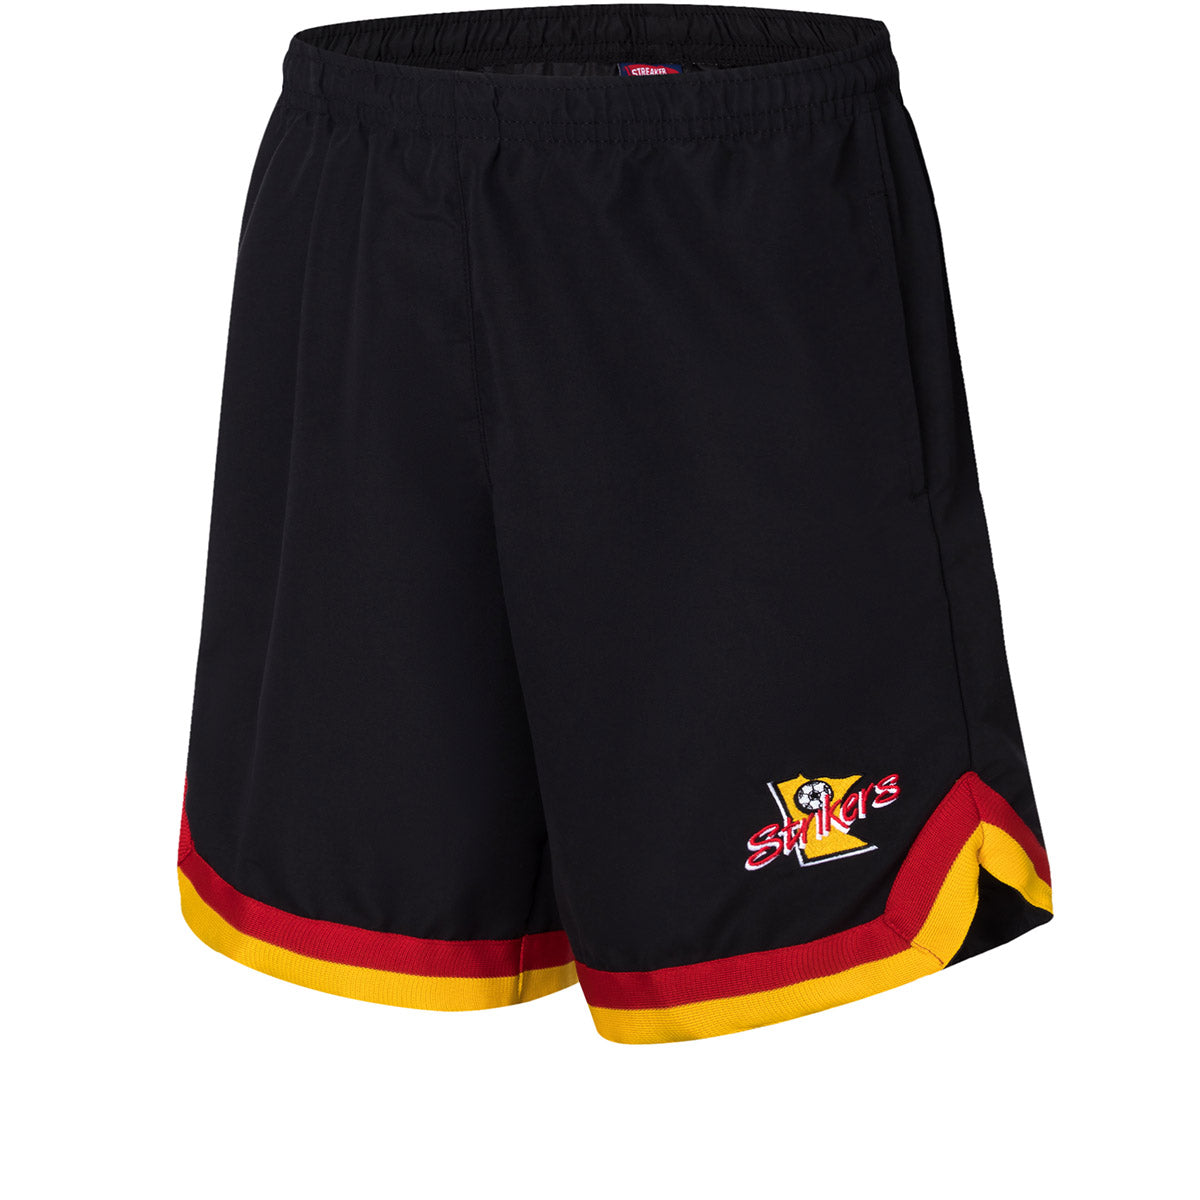 1985 Minnesota Strikers Shorts